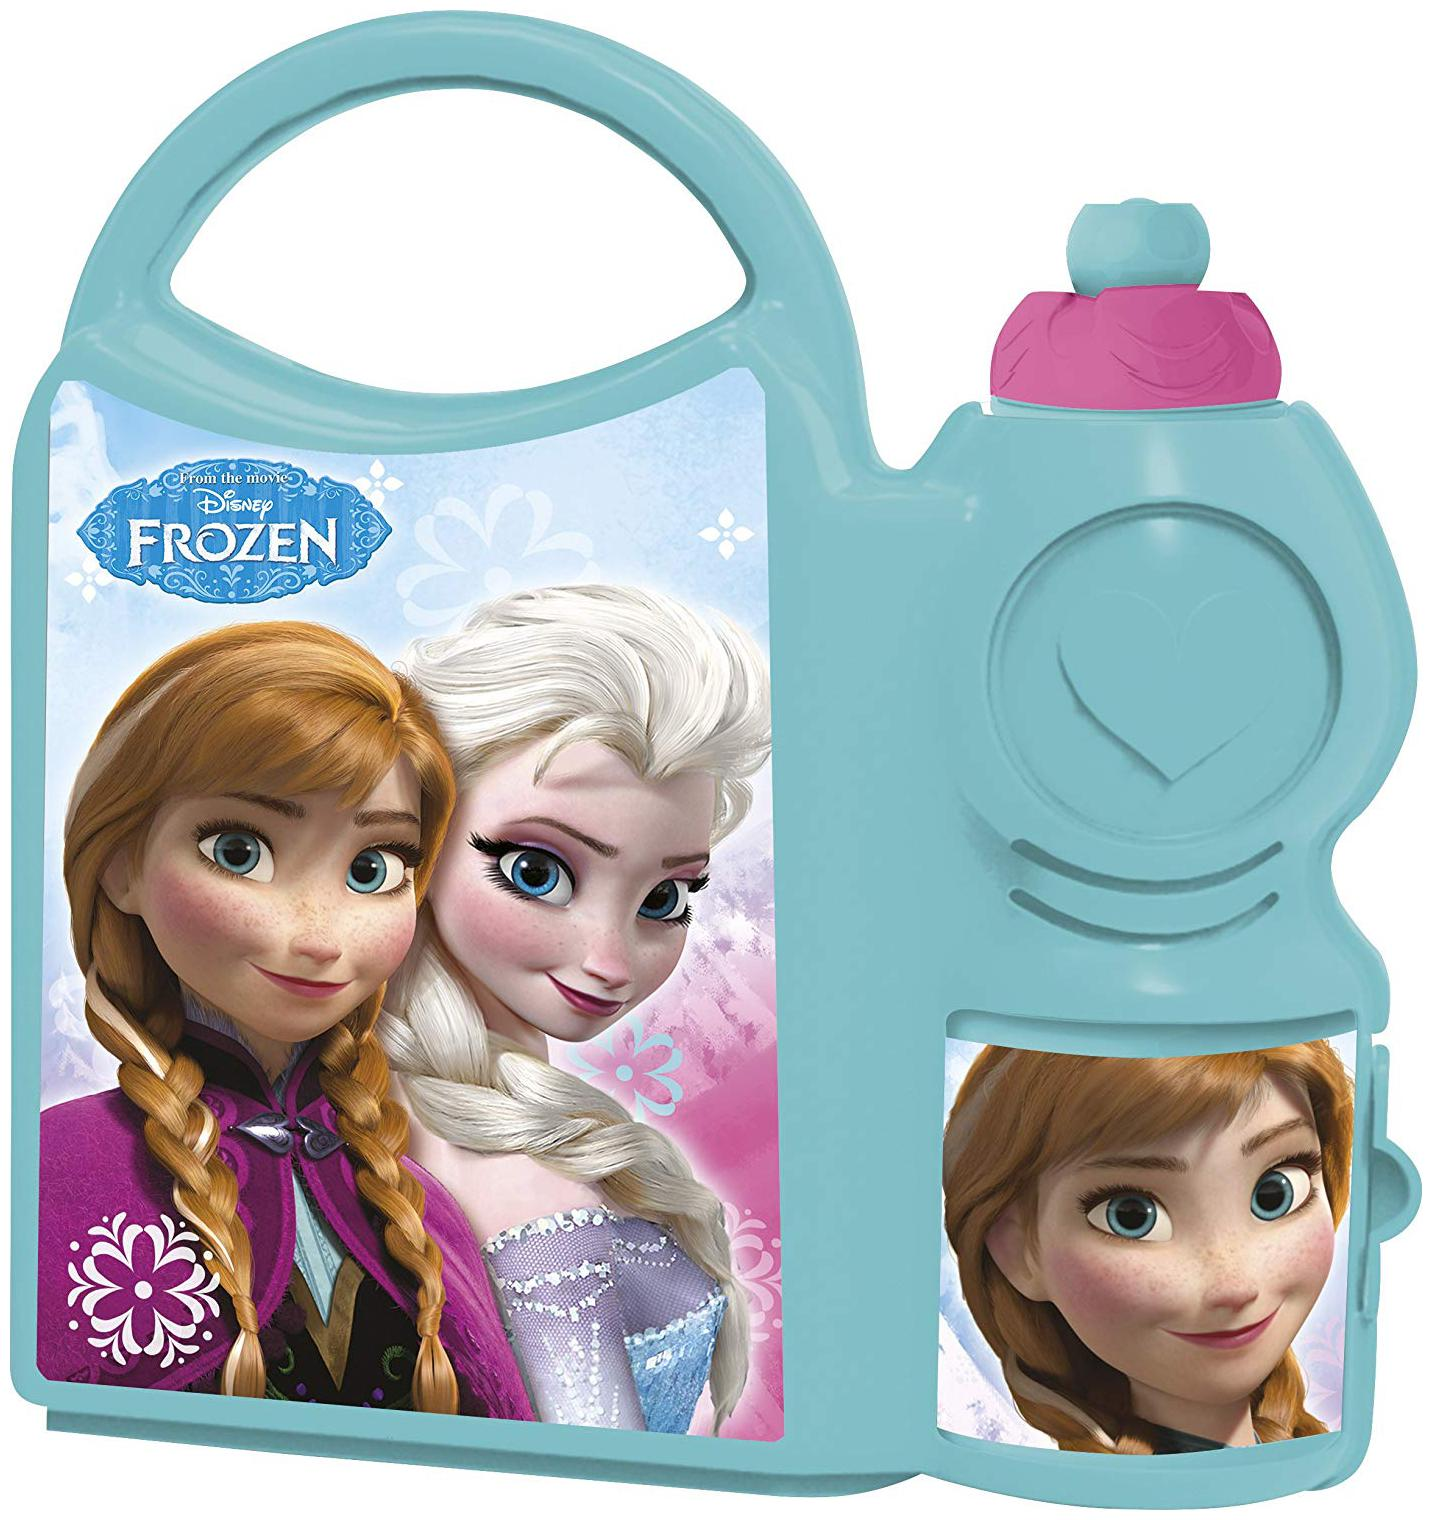 Disney Frozen School Plastic Lunch Box Set;2 pcs